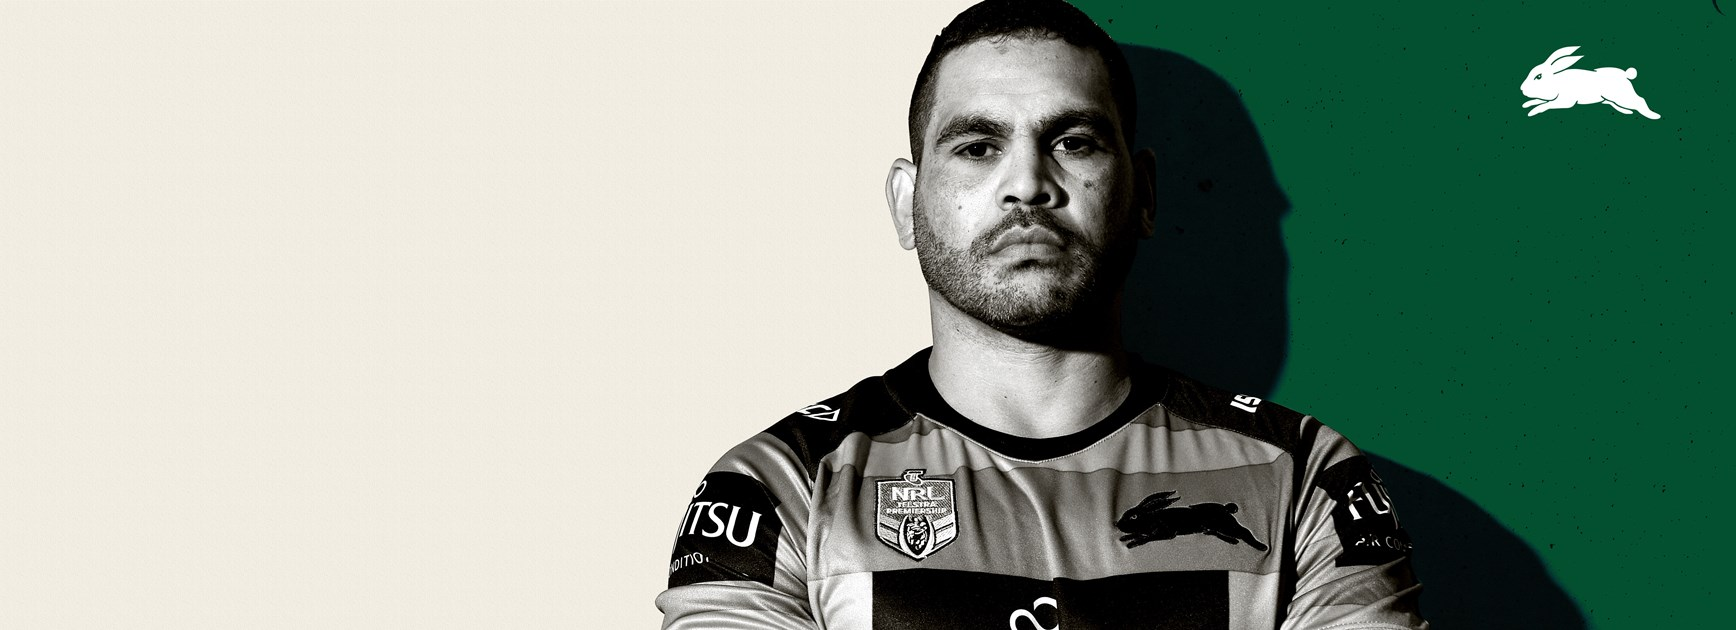 Rabbitohs 2019 Membership on sale now!